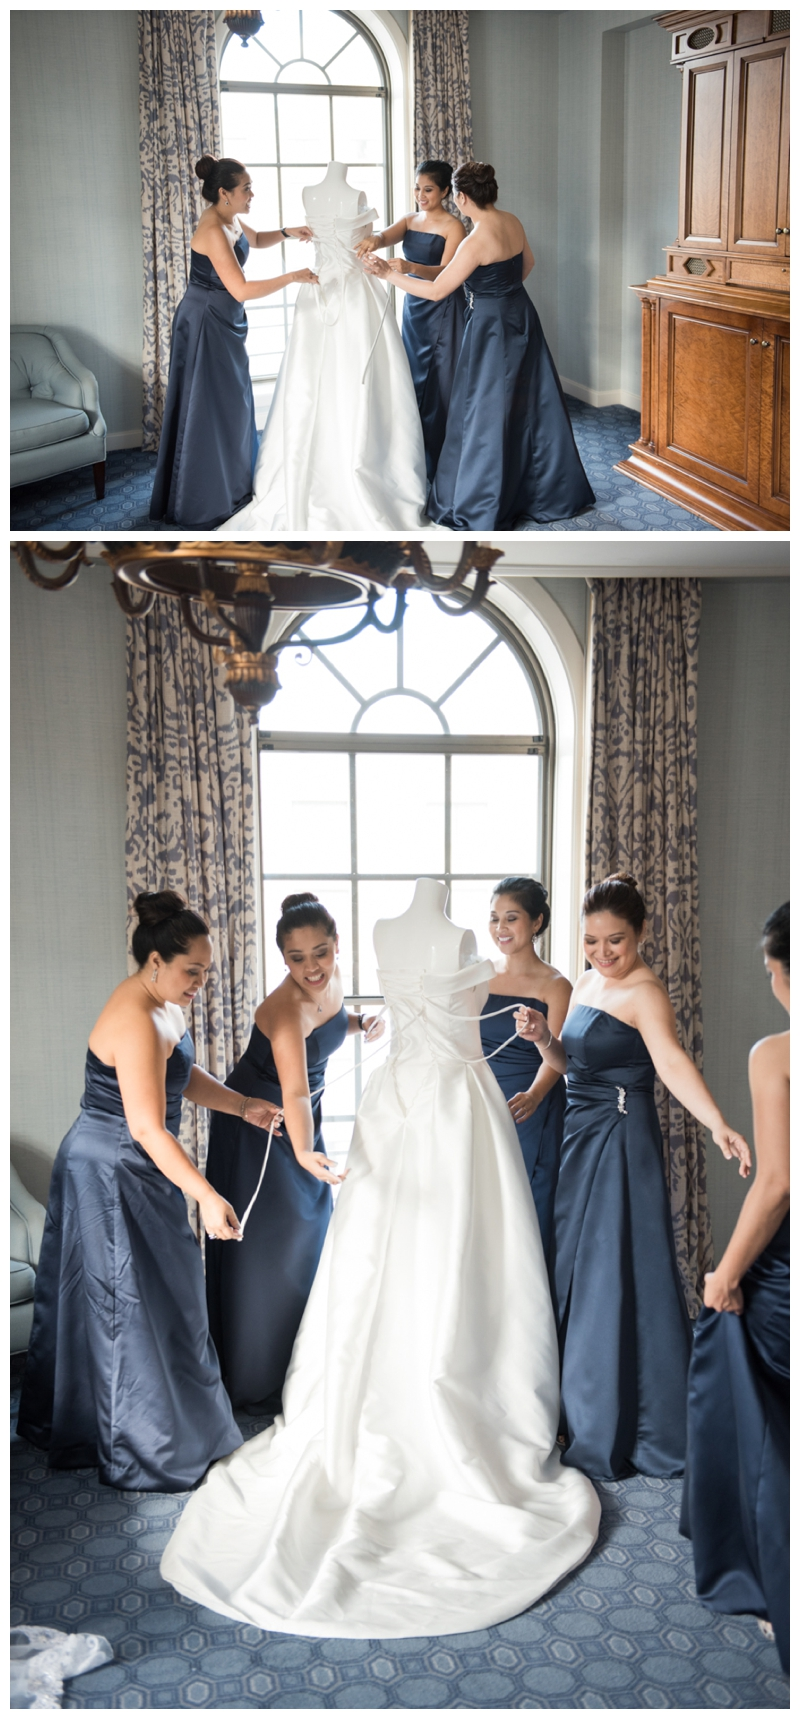 Wedding in Washington DC at the St Regis Hotel by Rachael Foster Photography_0020.jpg